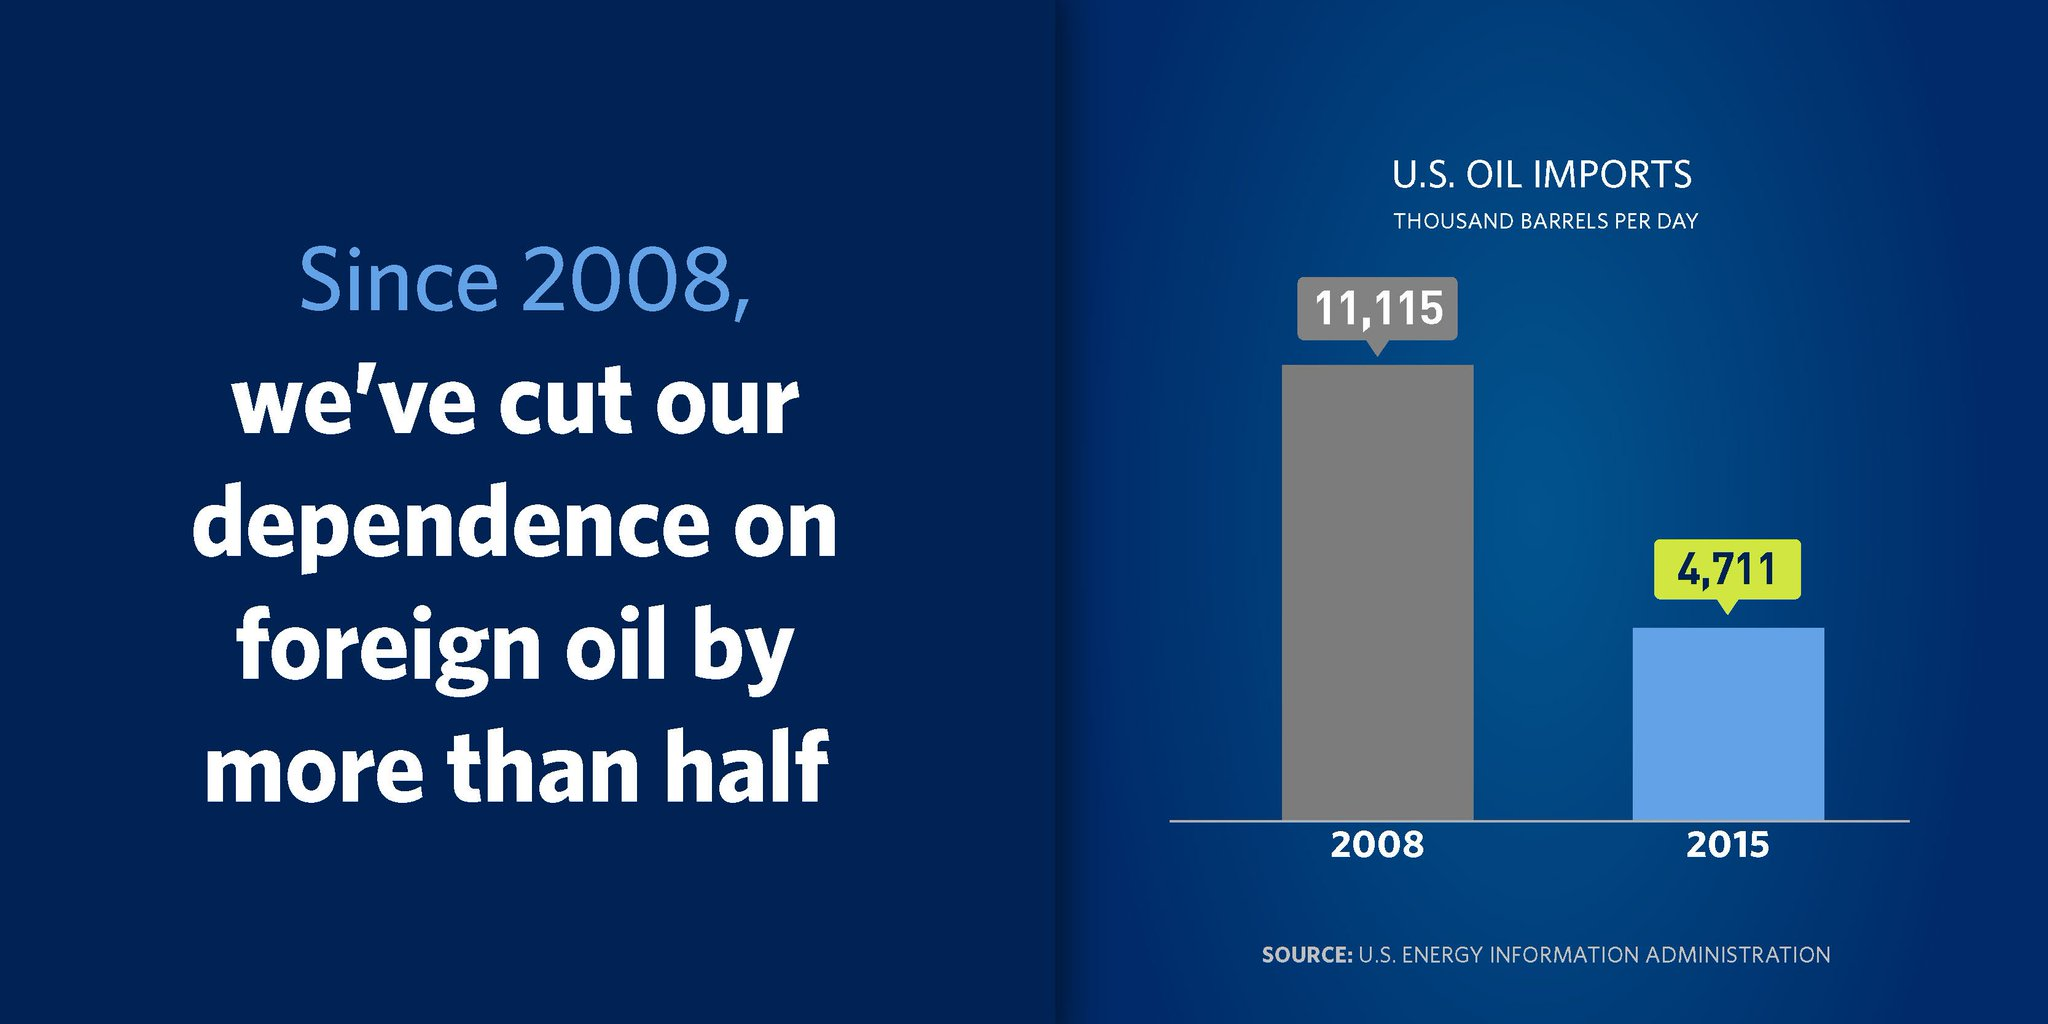 FACT: Since 2008, we've cut our dependence on foreign oil by more than half: https://t.co/w9kKQgej3A https://t.co/fcRZJgobyE